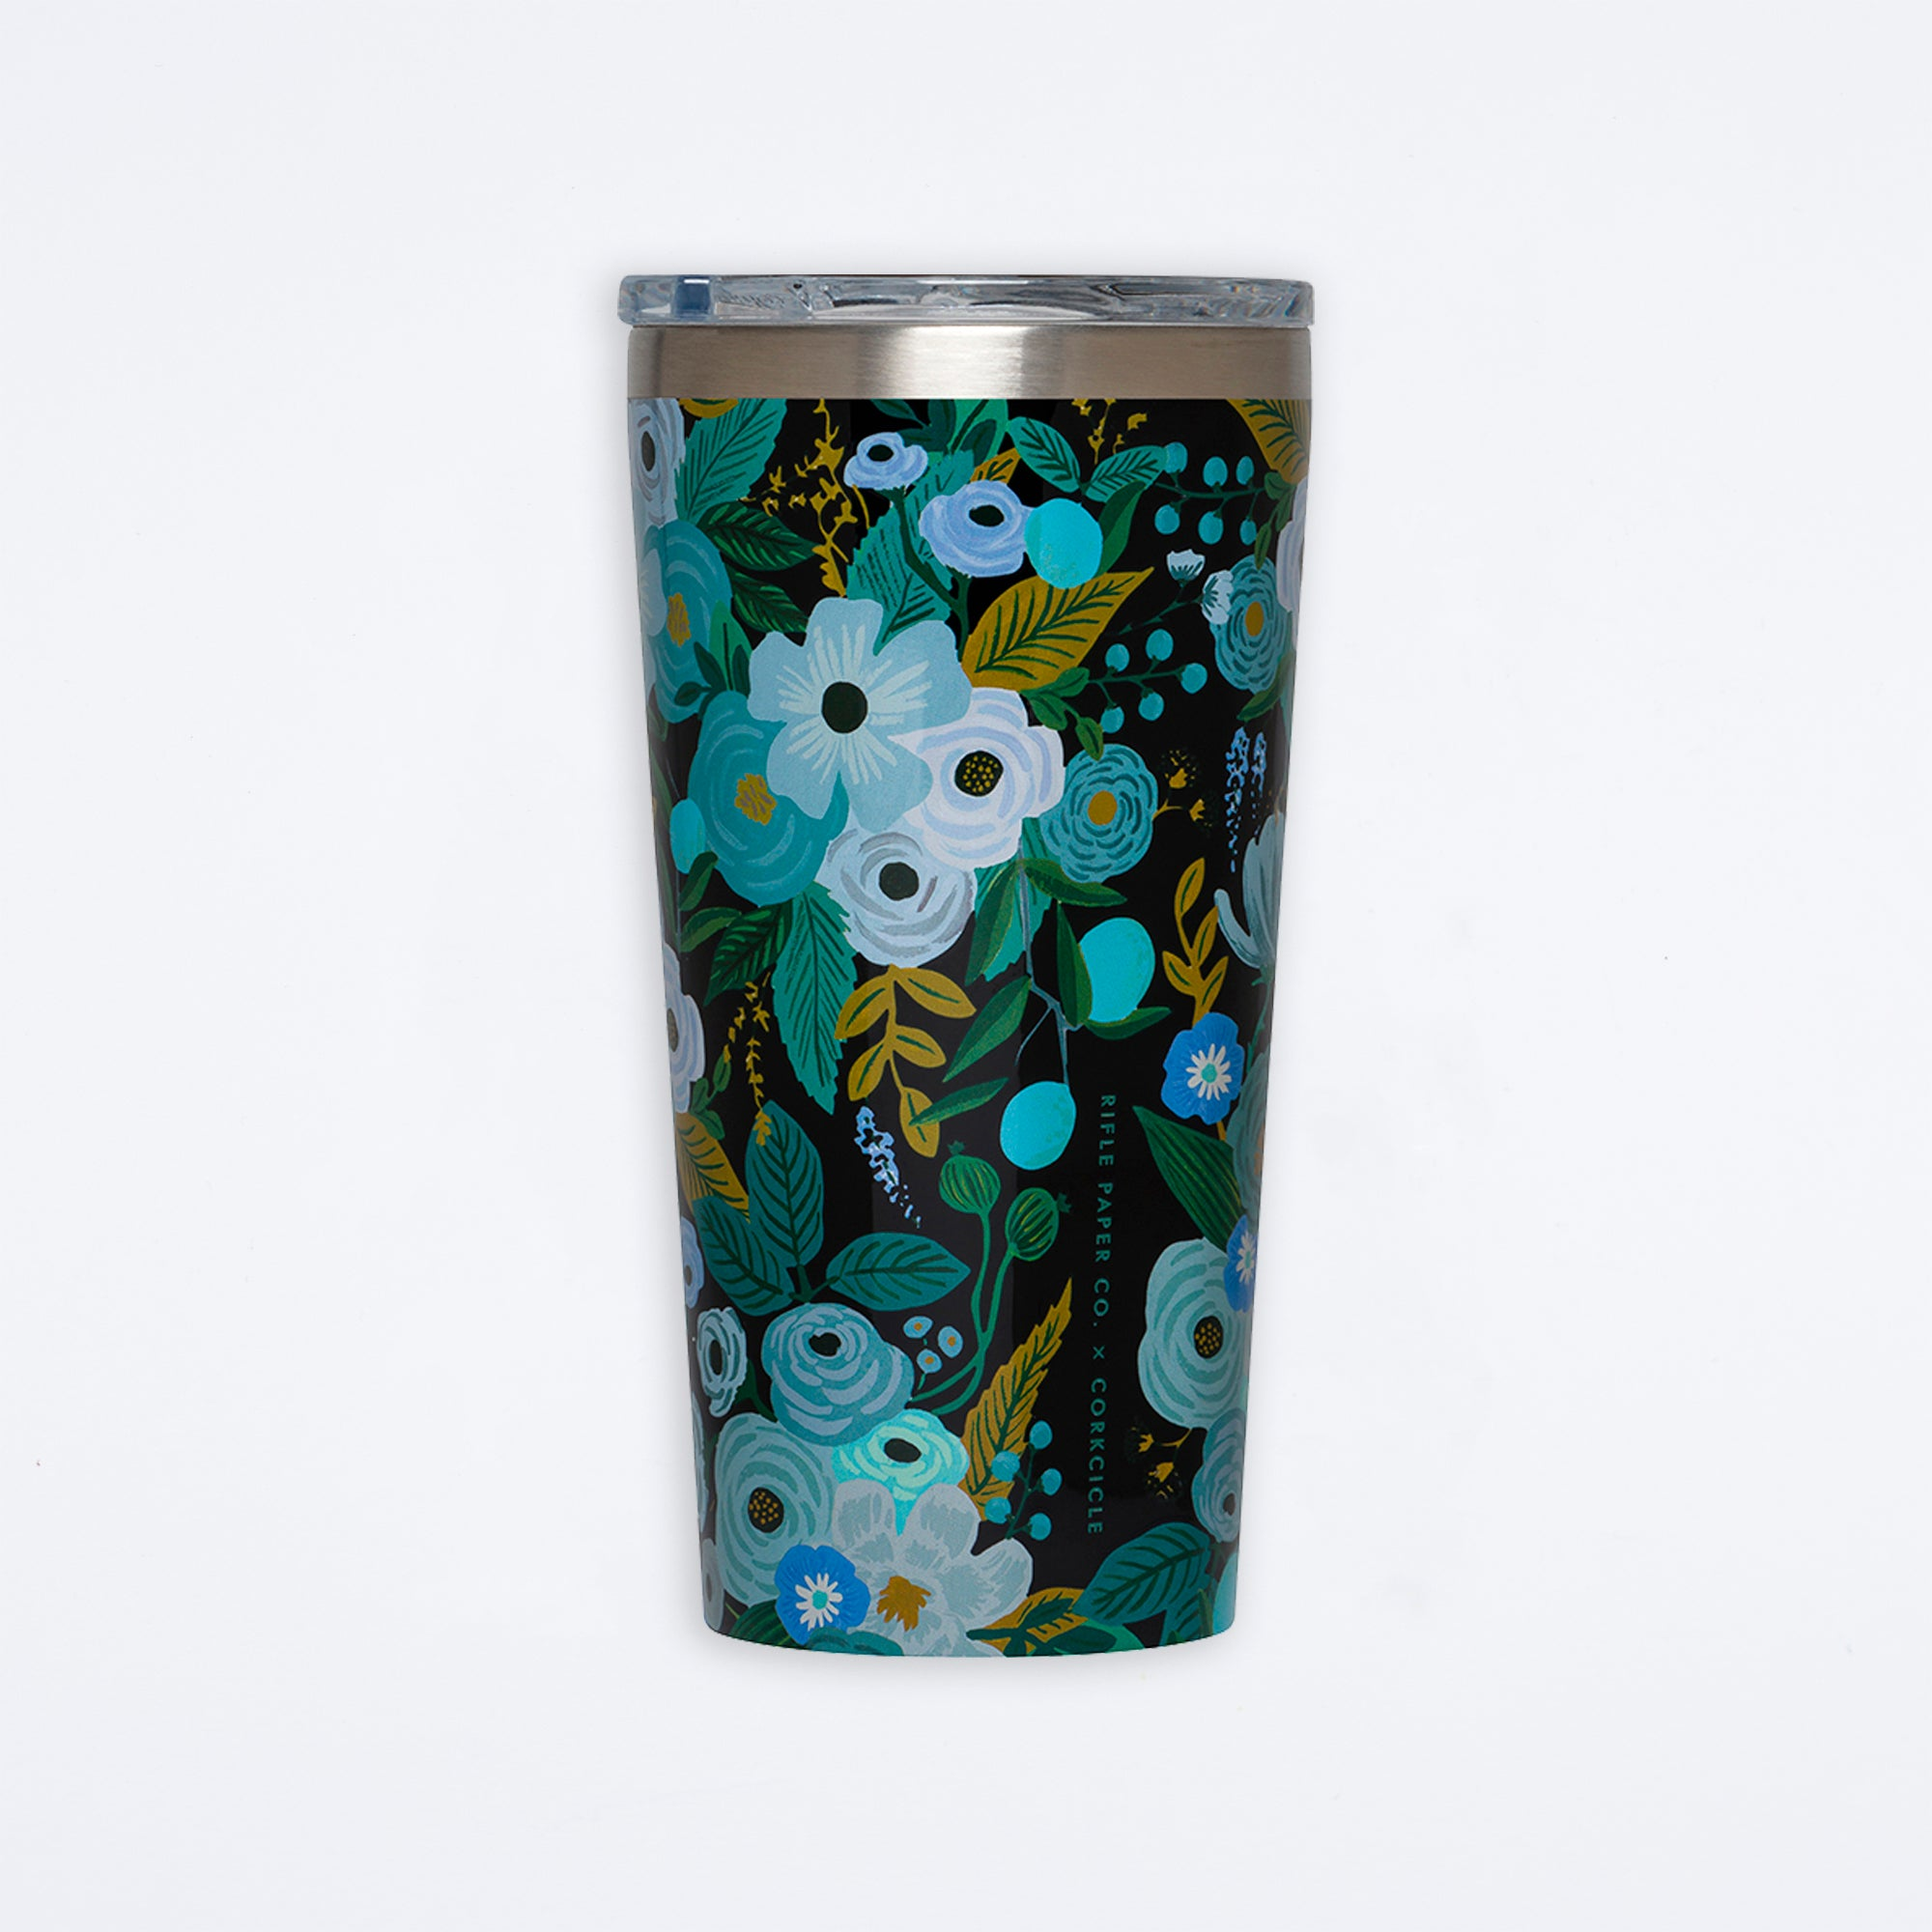 Corkcicle x Rifle Paper Co. Tumbler